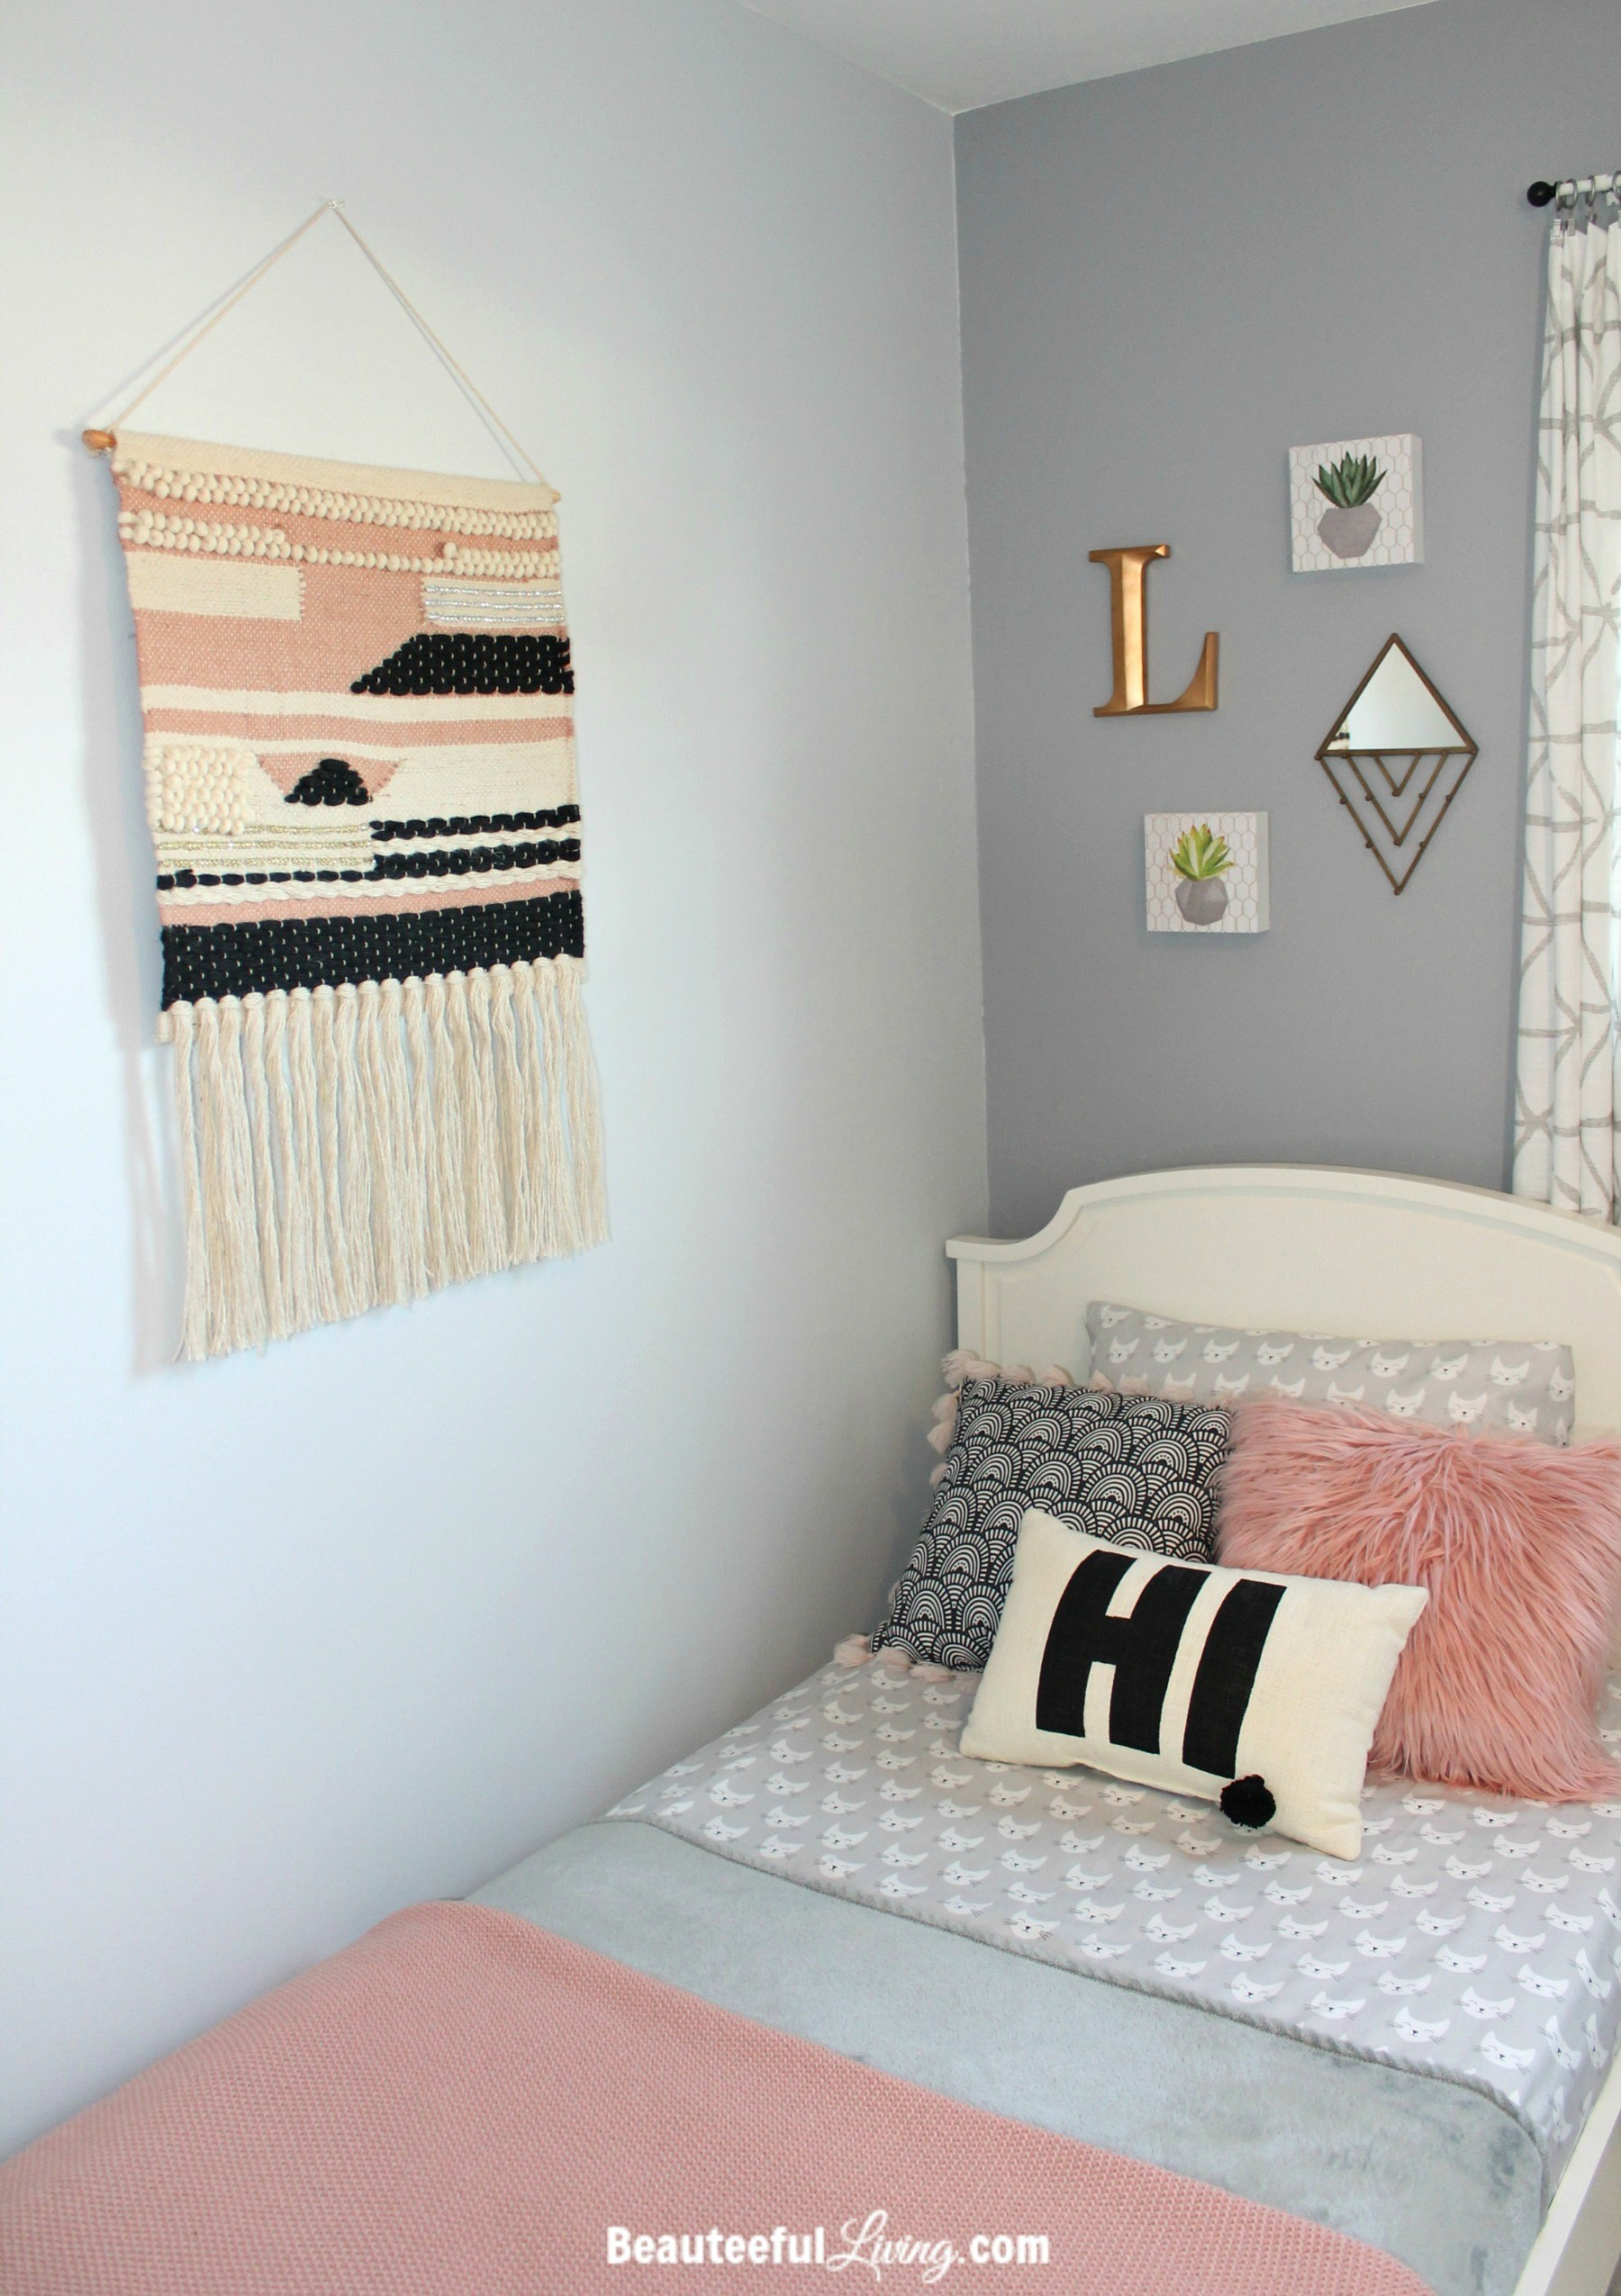 Awesome Girls Room Colors Of Boho Hipster Chic Color Scheme Beauteeful Acnn Decor